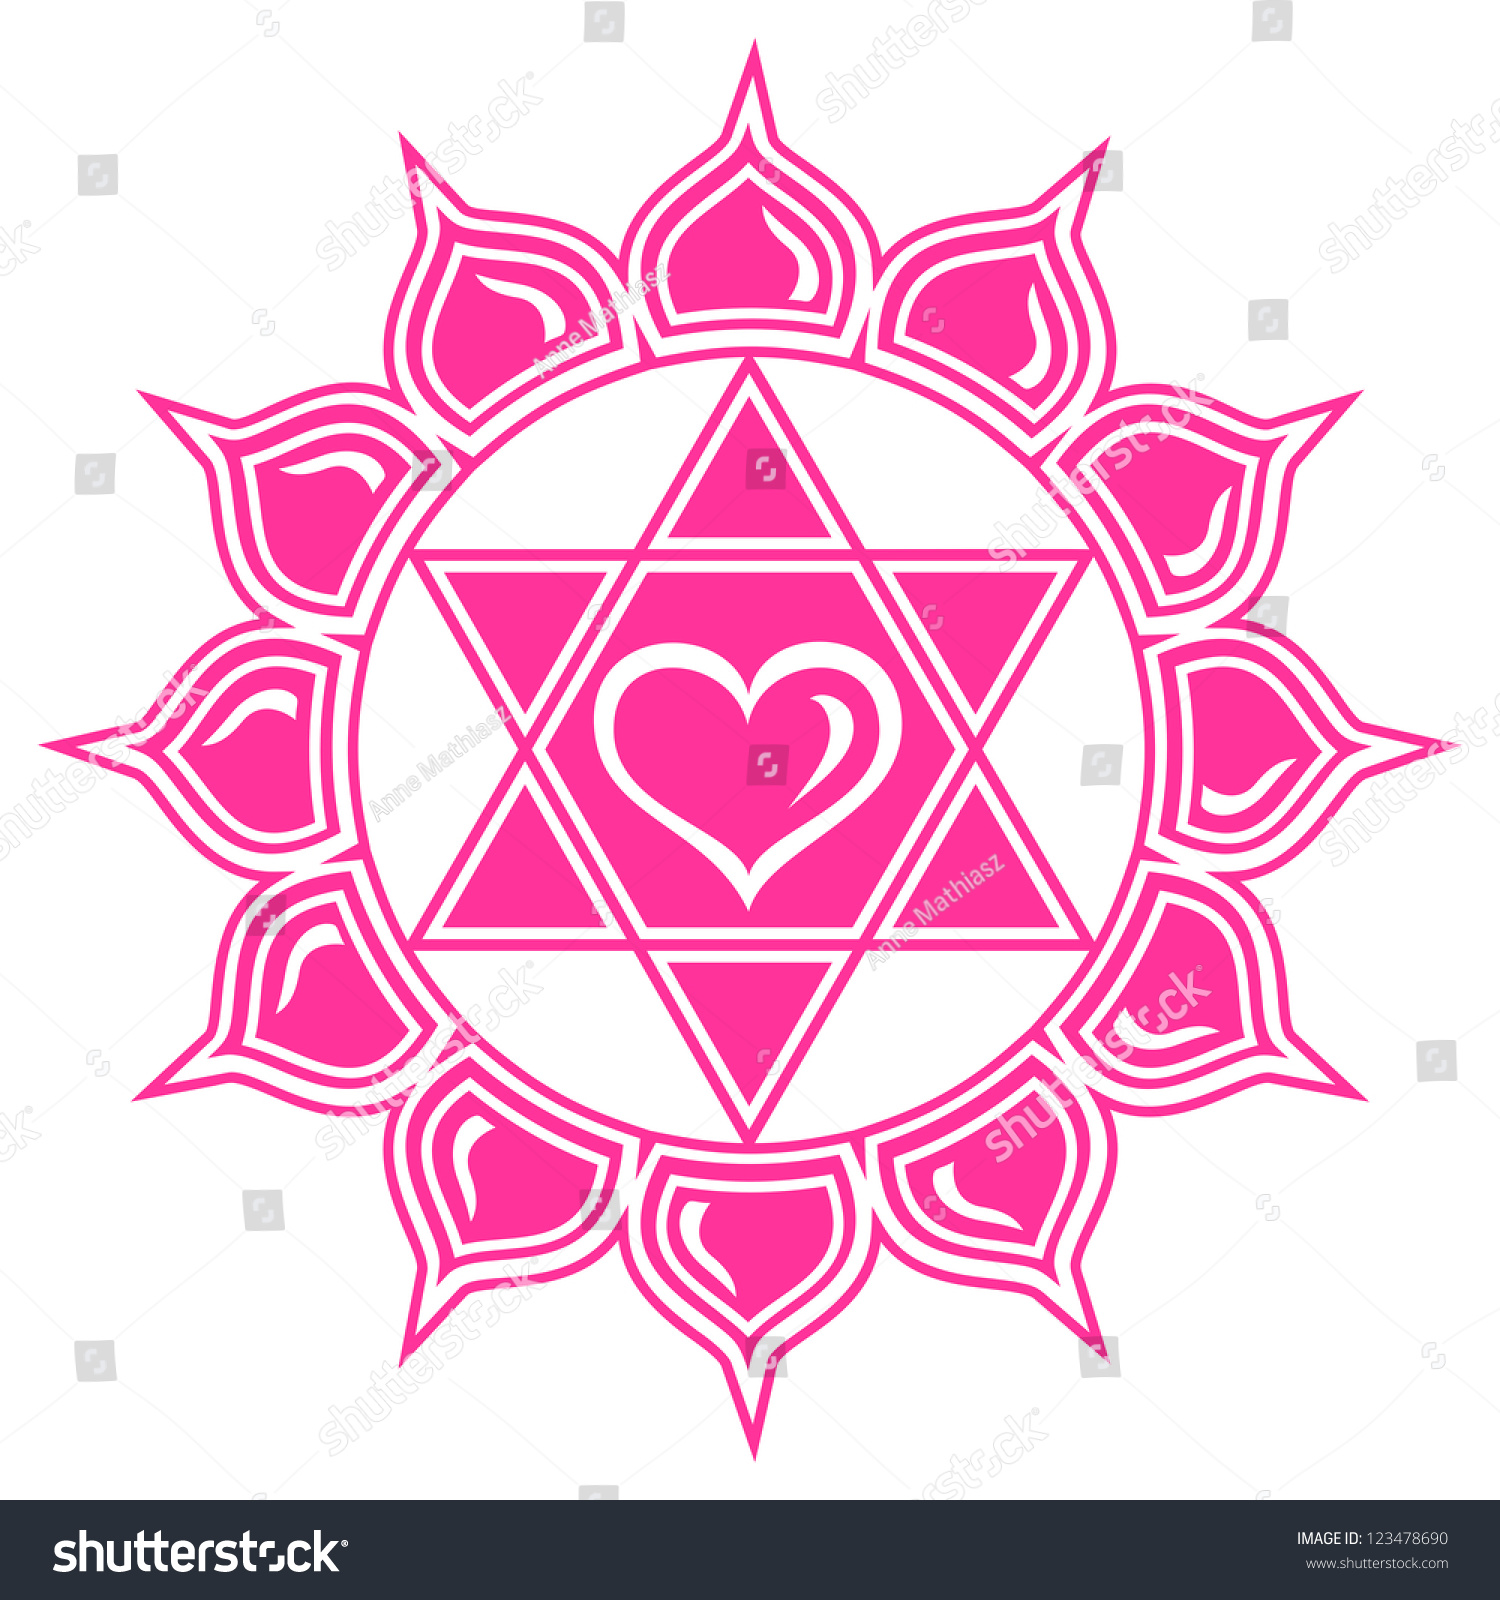 Anahata heart chakra lotus flower center stock vector royalty free anahata heart chakra lotus flower center of love and compassion vector image izmirmasajfo